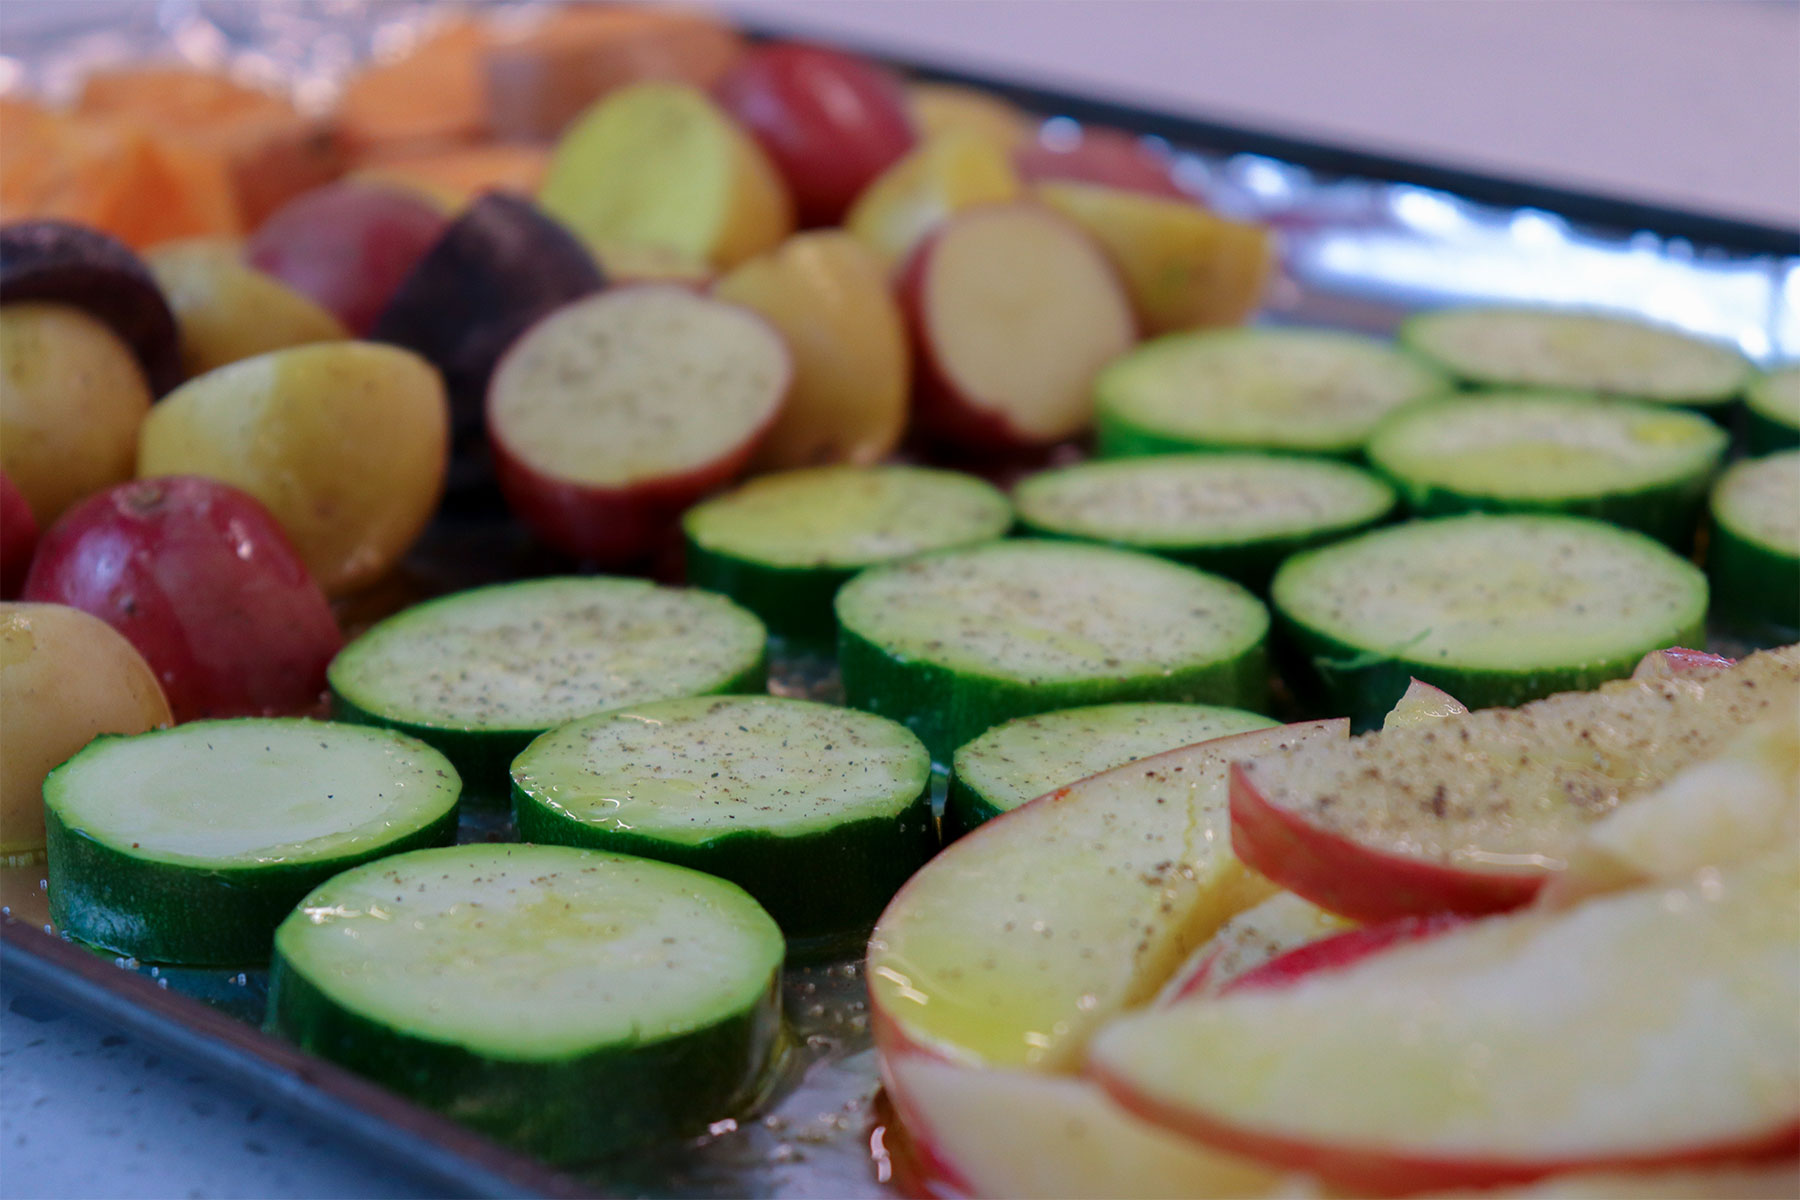 chopped Veggies on foil lined baking sheet